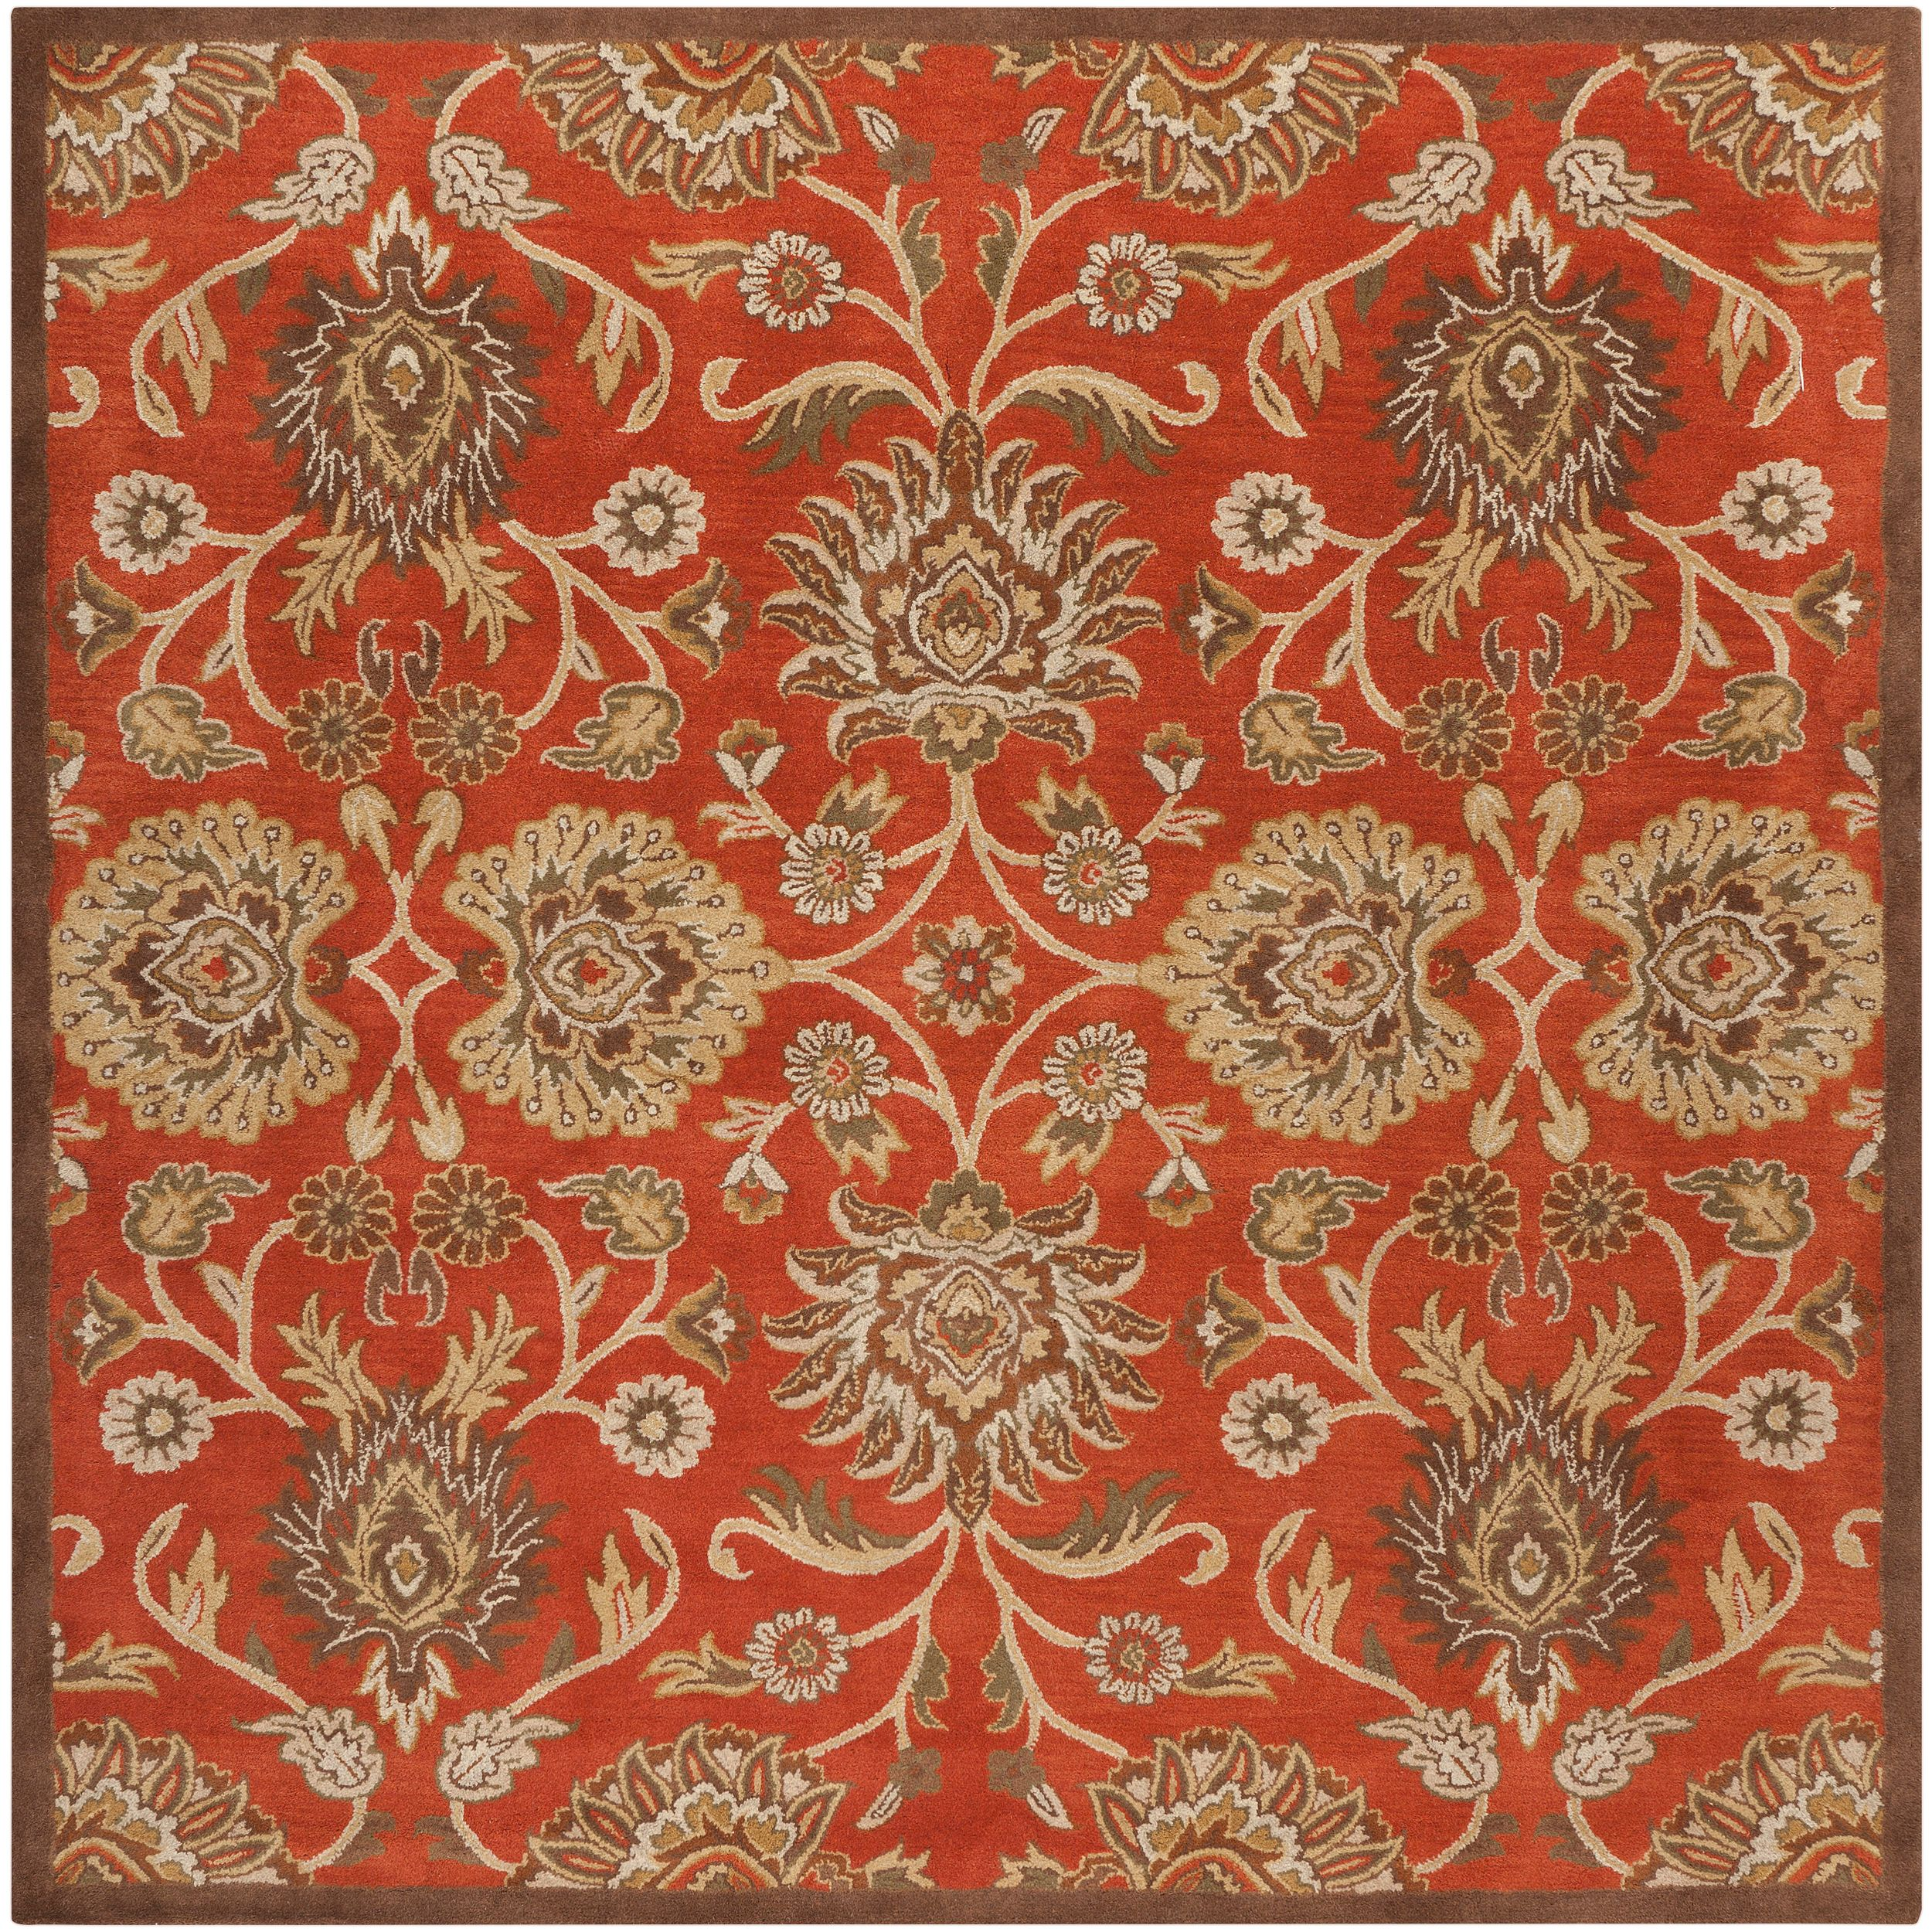 Hand Tufted Rouchel Red Wool Area Rug 8 Square Red Wool Area Rug Square Area Rugs Traditional Area Rugs